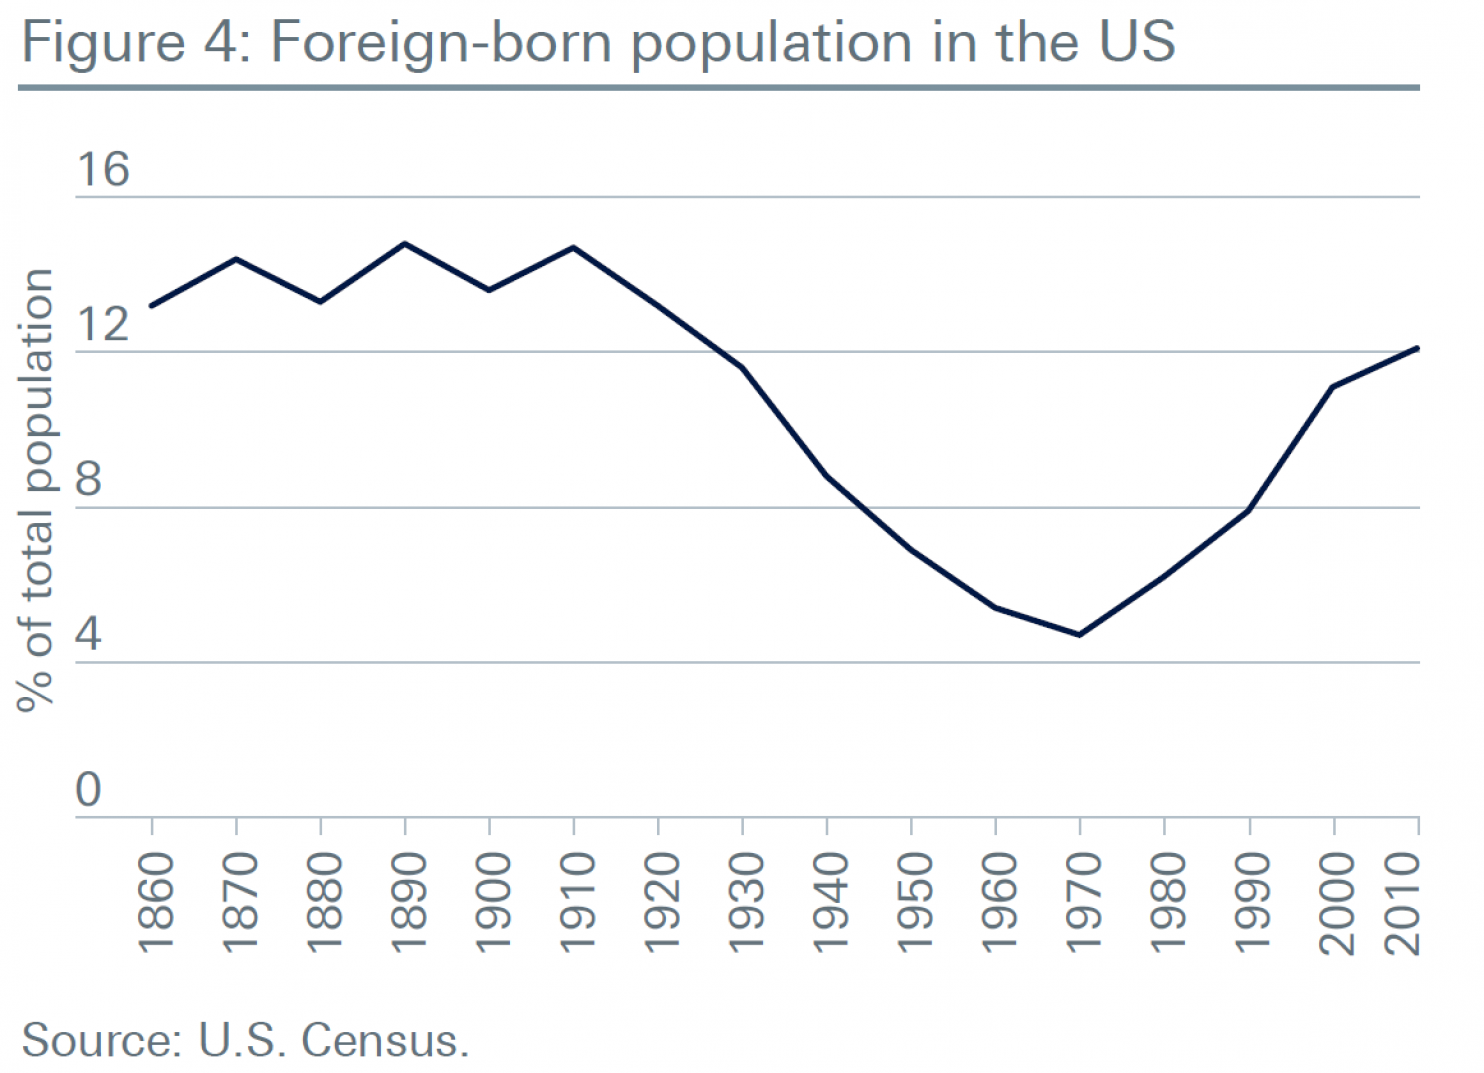 foreign born population in the US